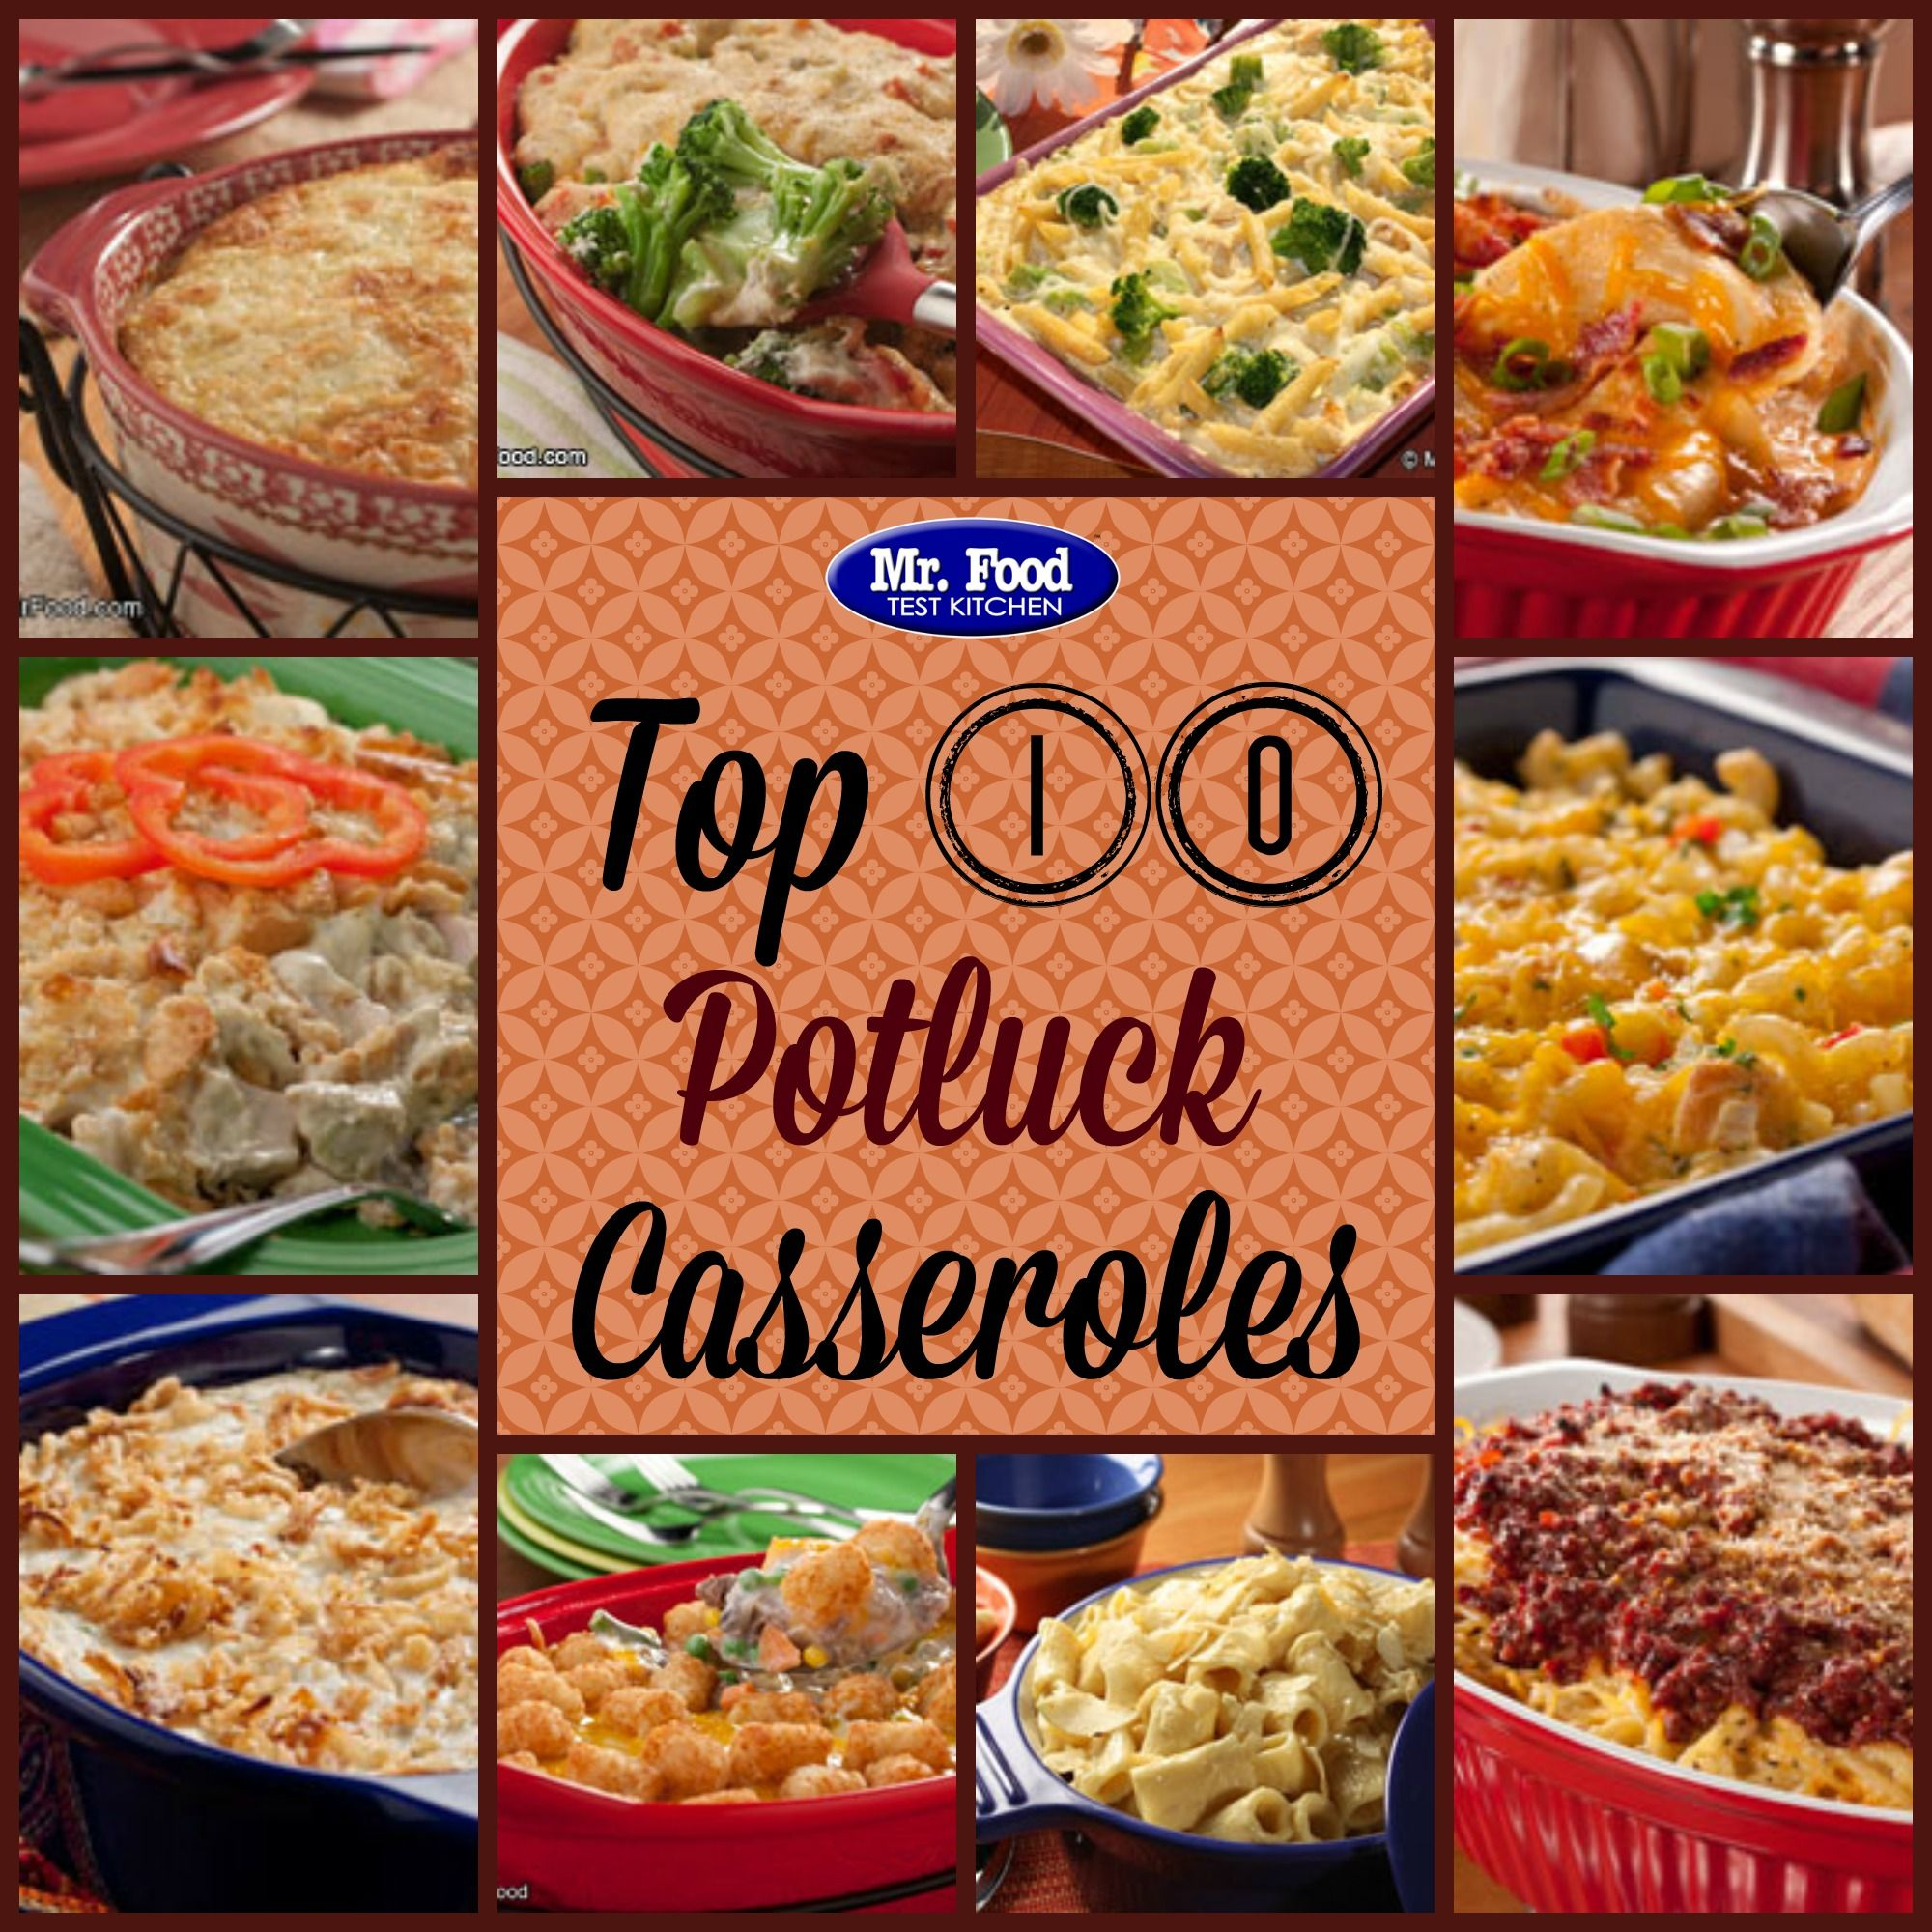 Potluck casserole recipes 10 simple casserole recipes for for Easy entree recipes dinner party